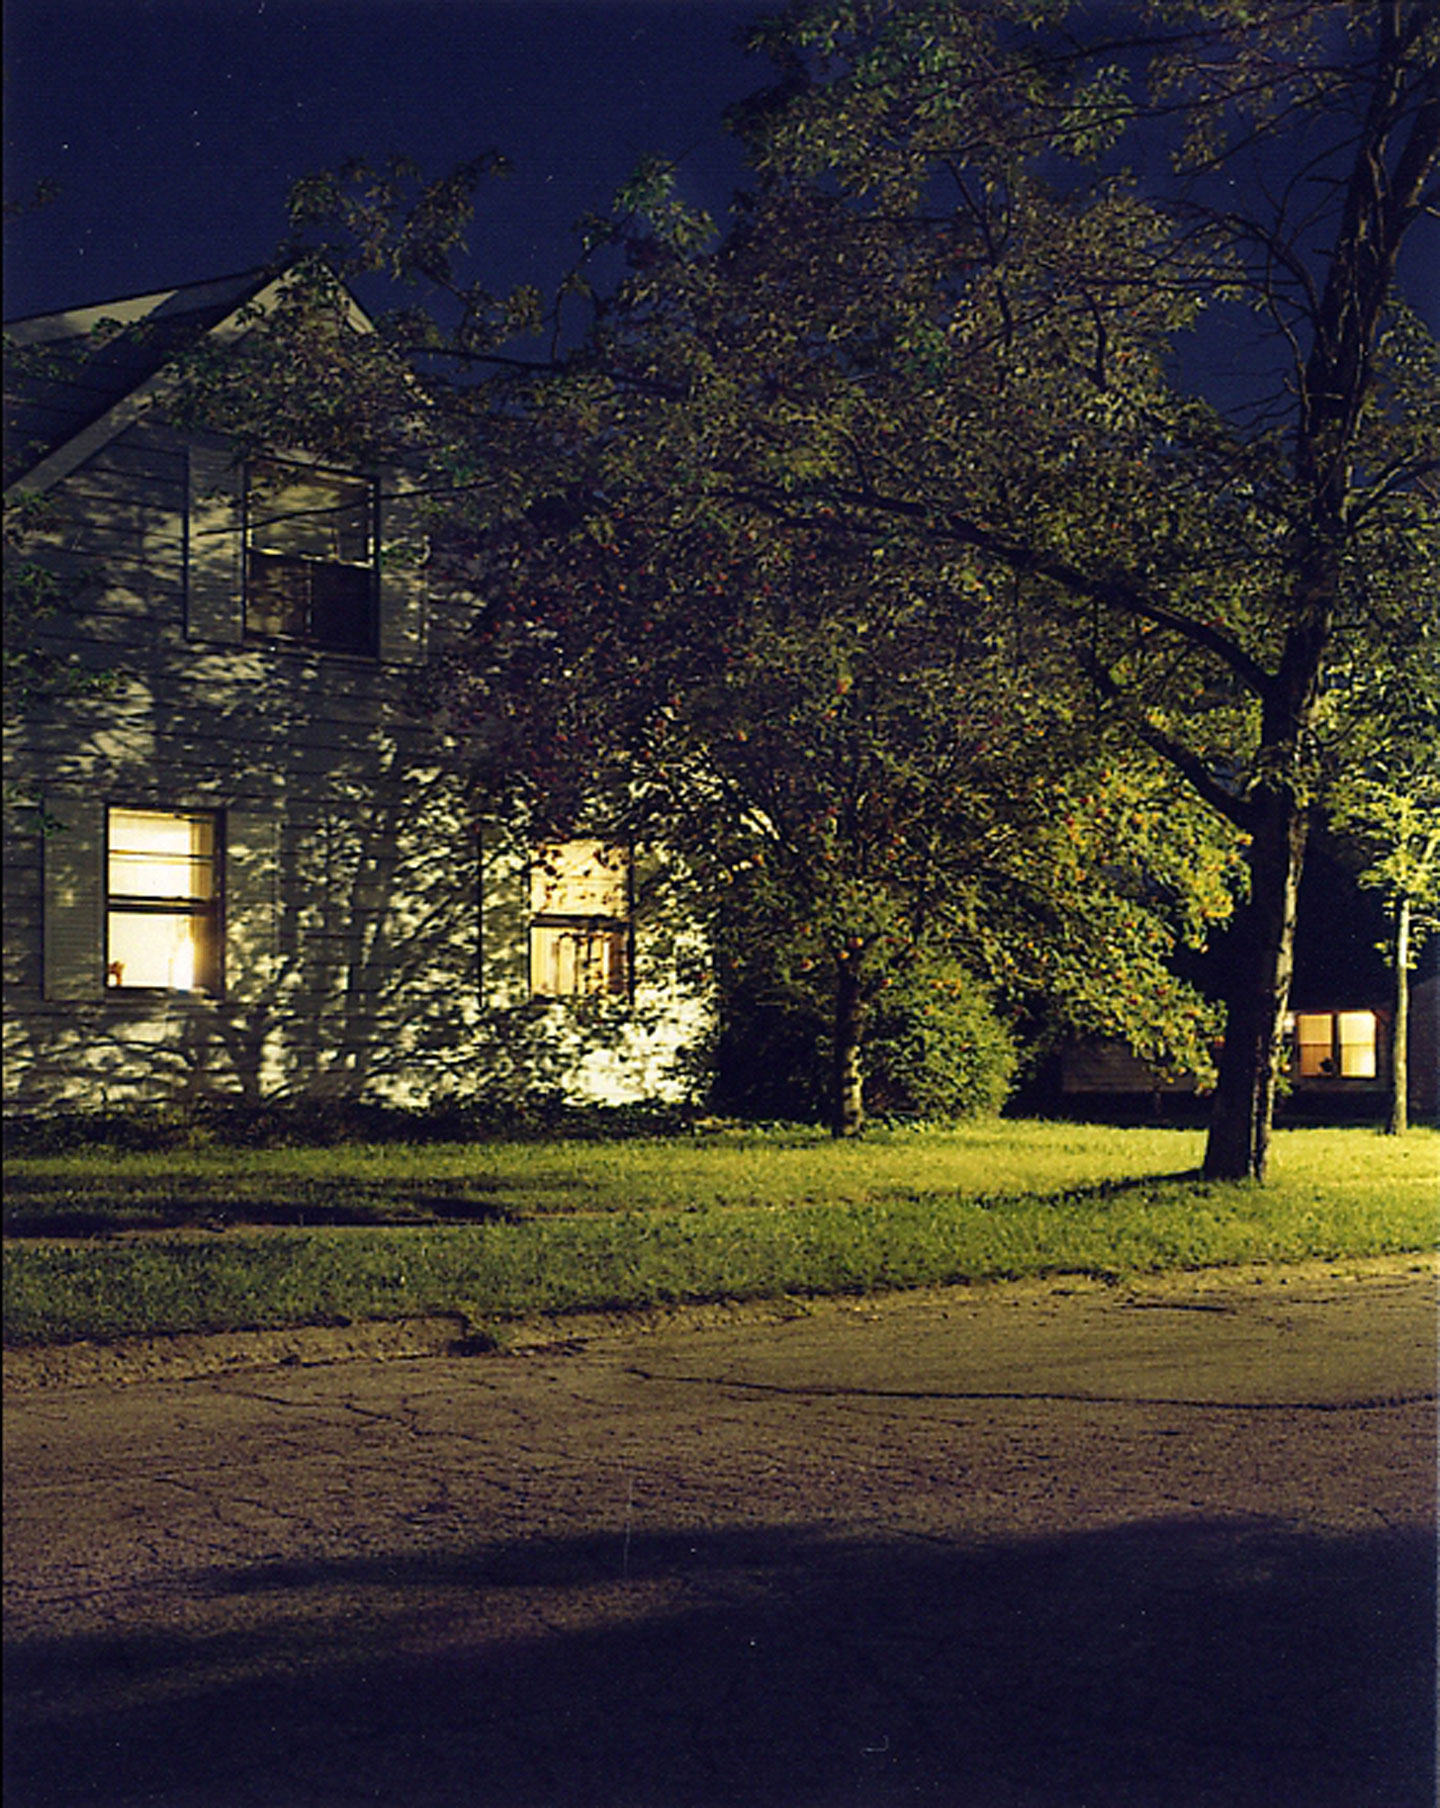 Todd Hido: Taft Street (Complete Set of Four Books) (One Picture Book #6), Limited Edition (with 4 Prints)